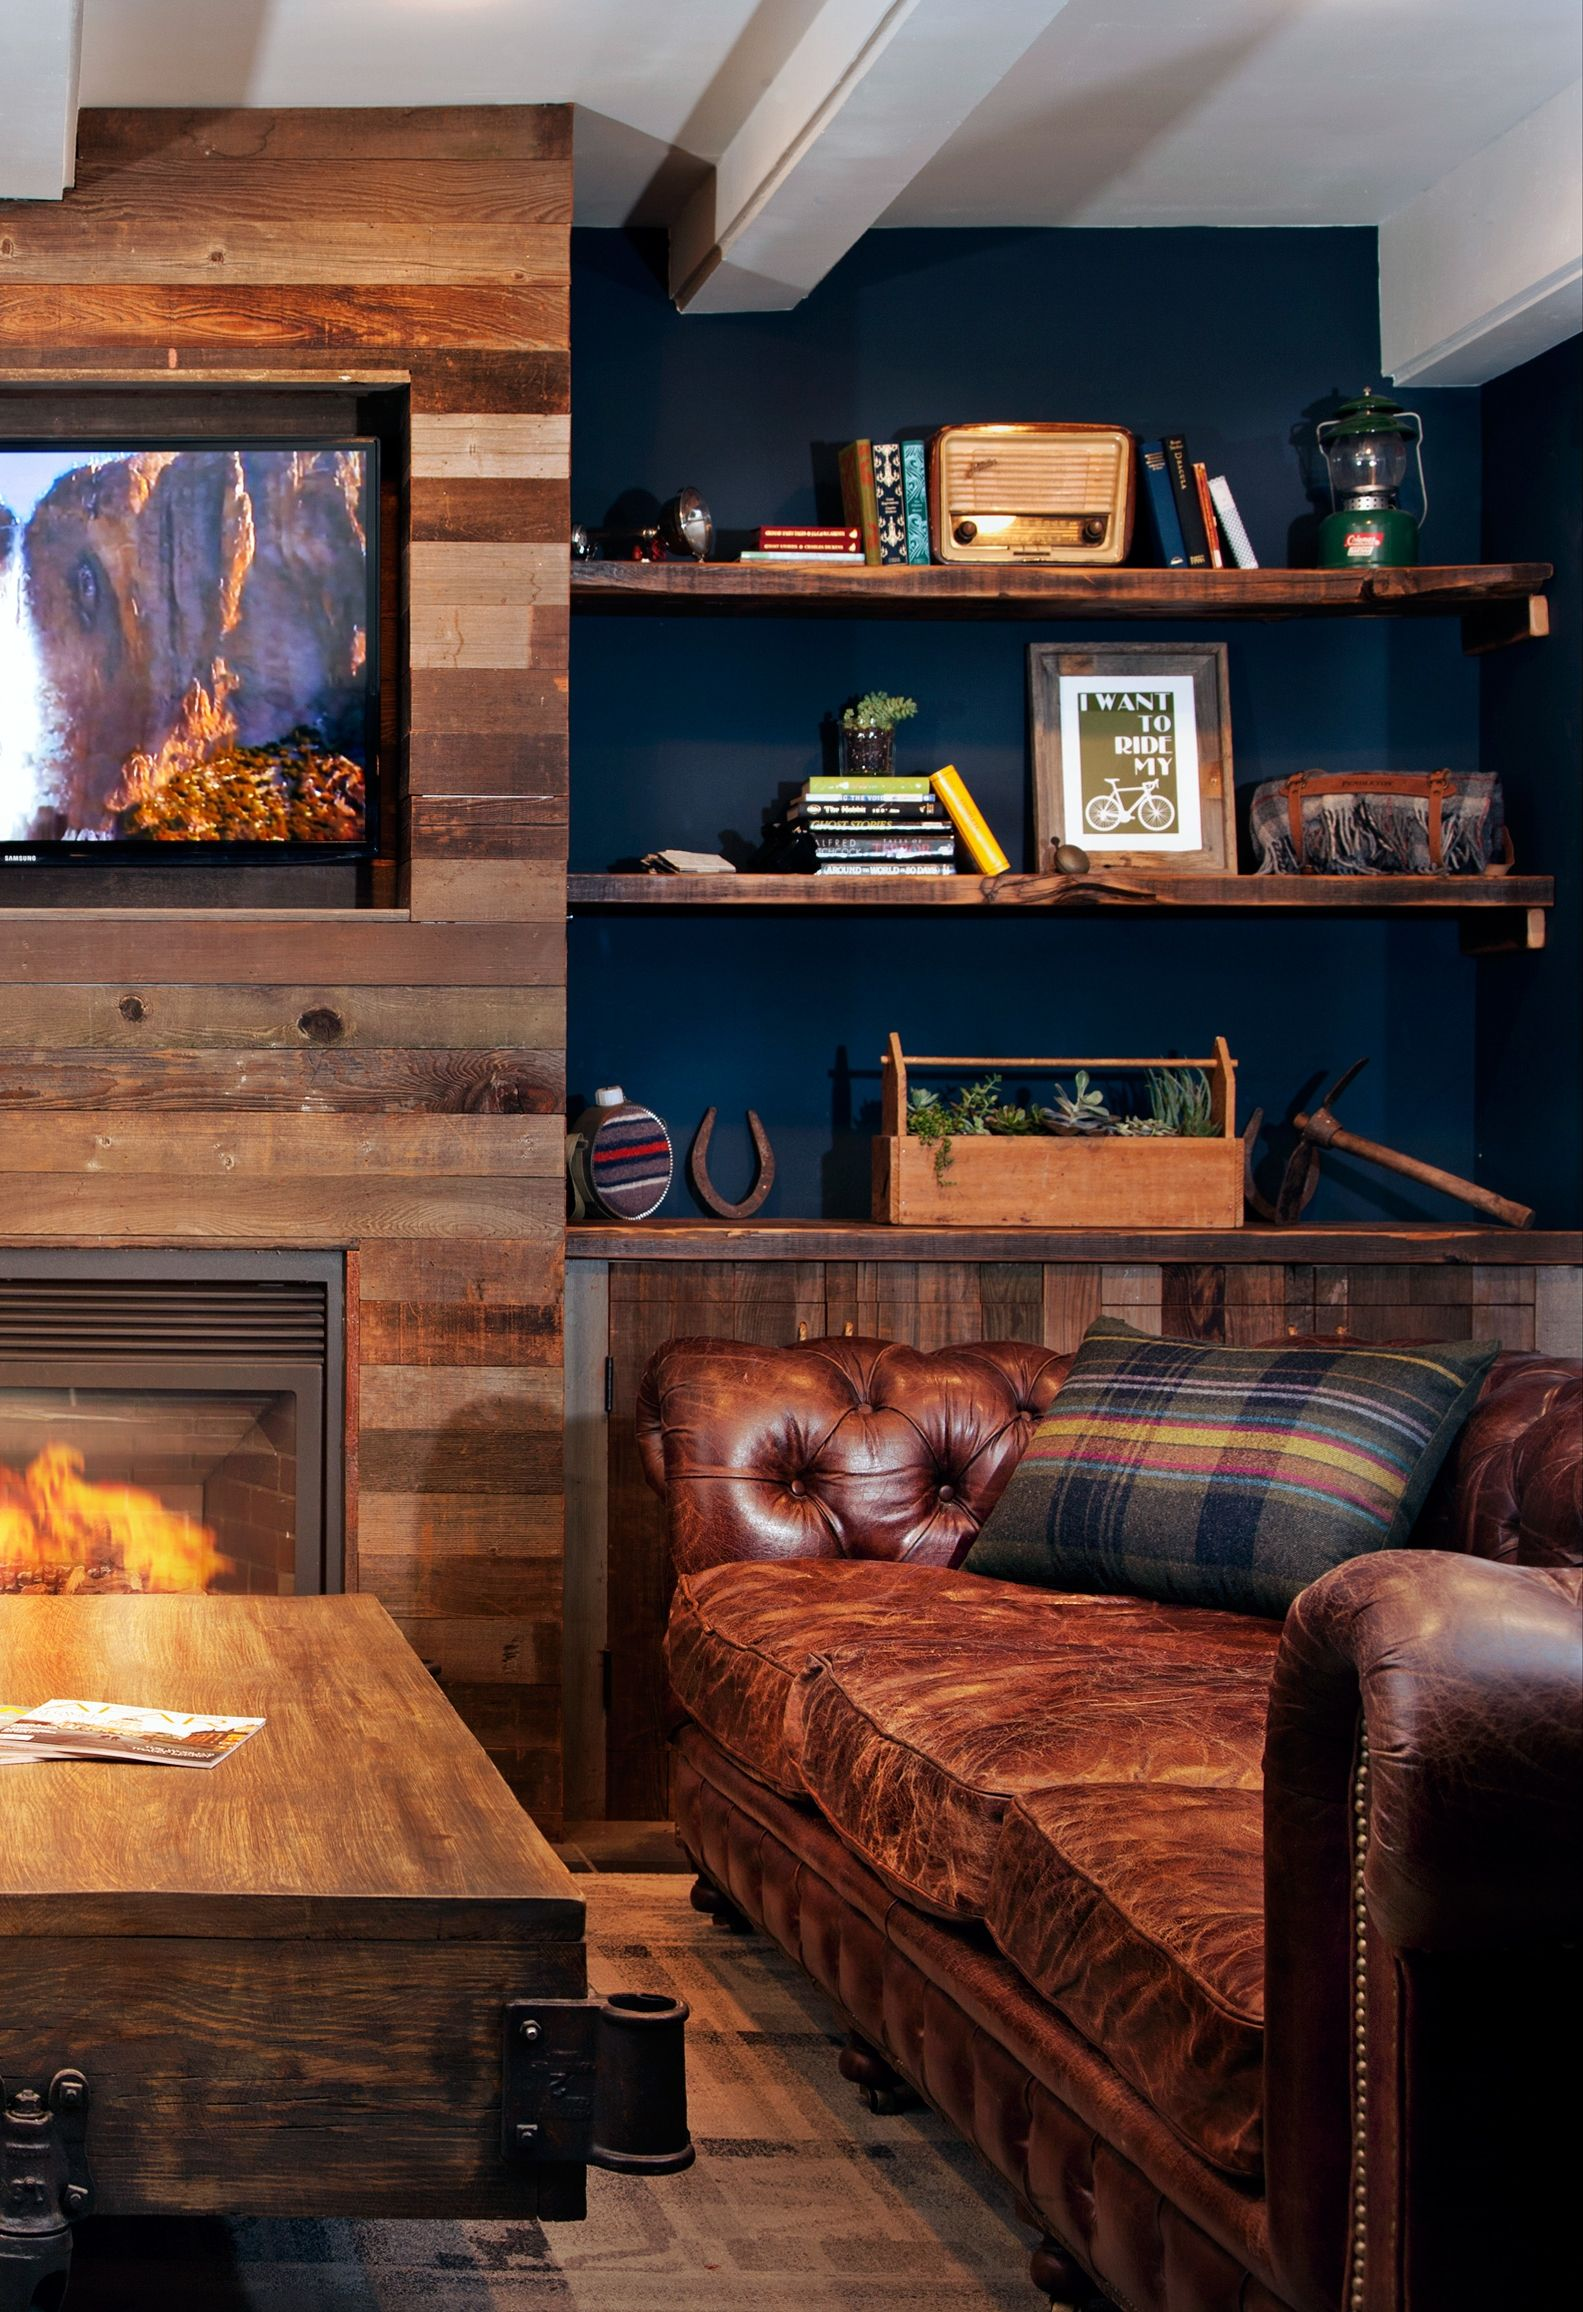 Snuggle Up On A Leather Couch By The Fireplace In Rustic Chic Lobby